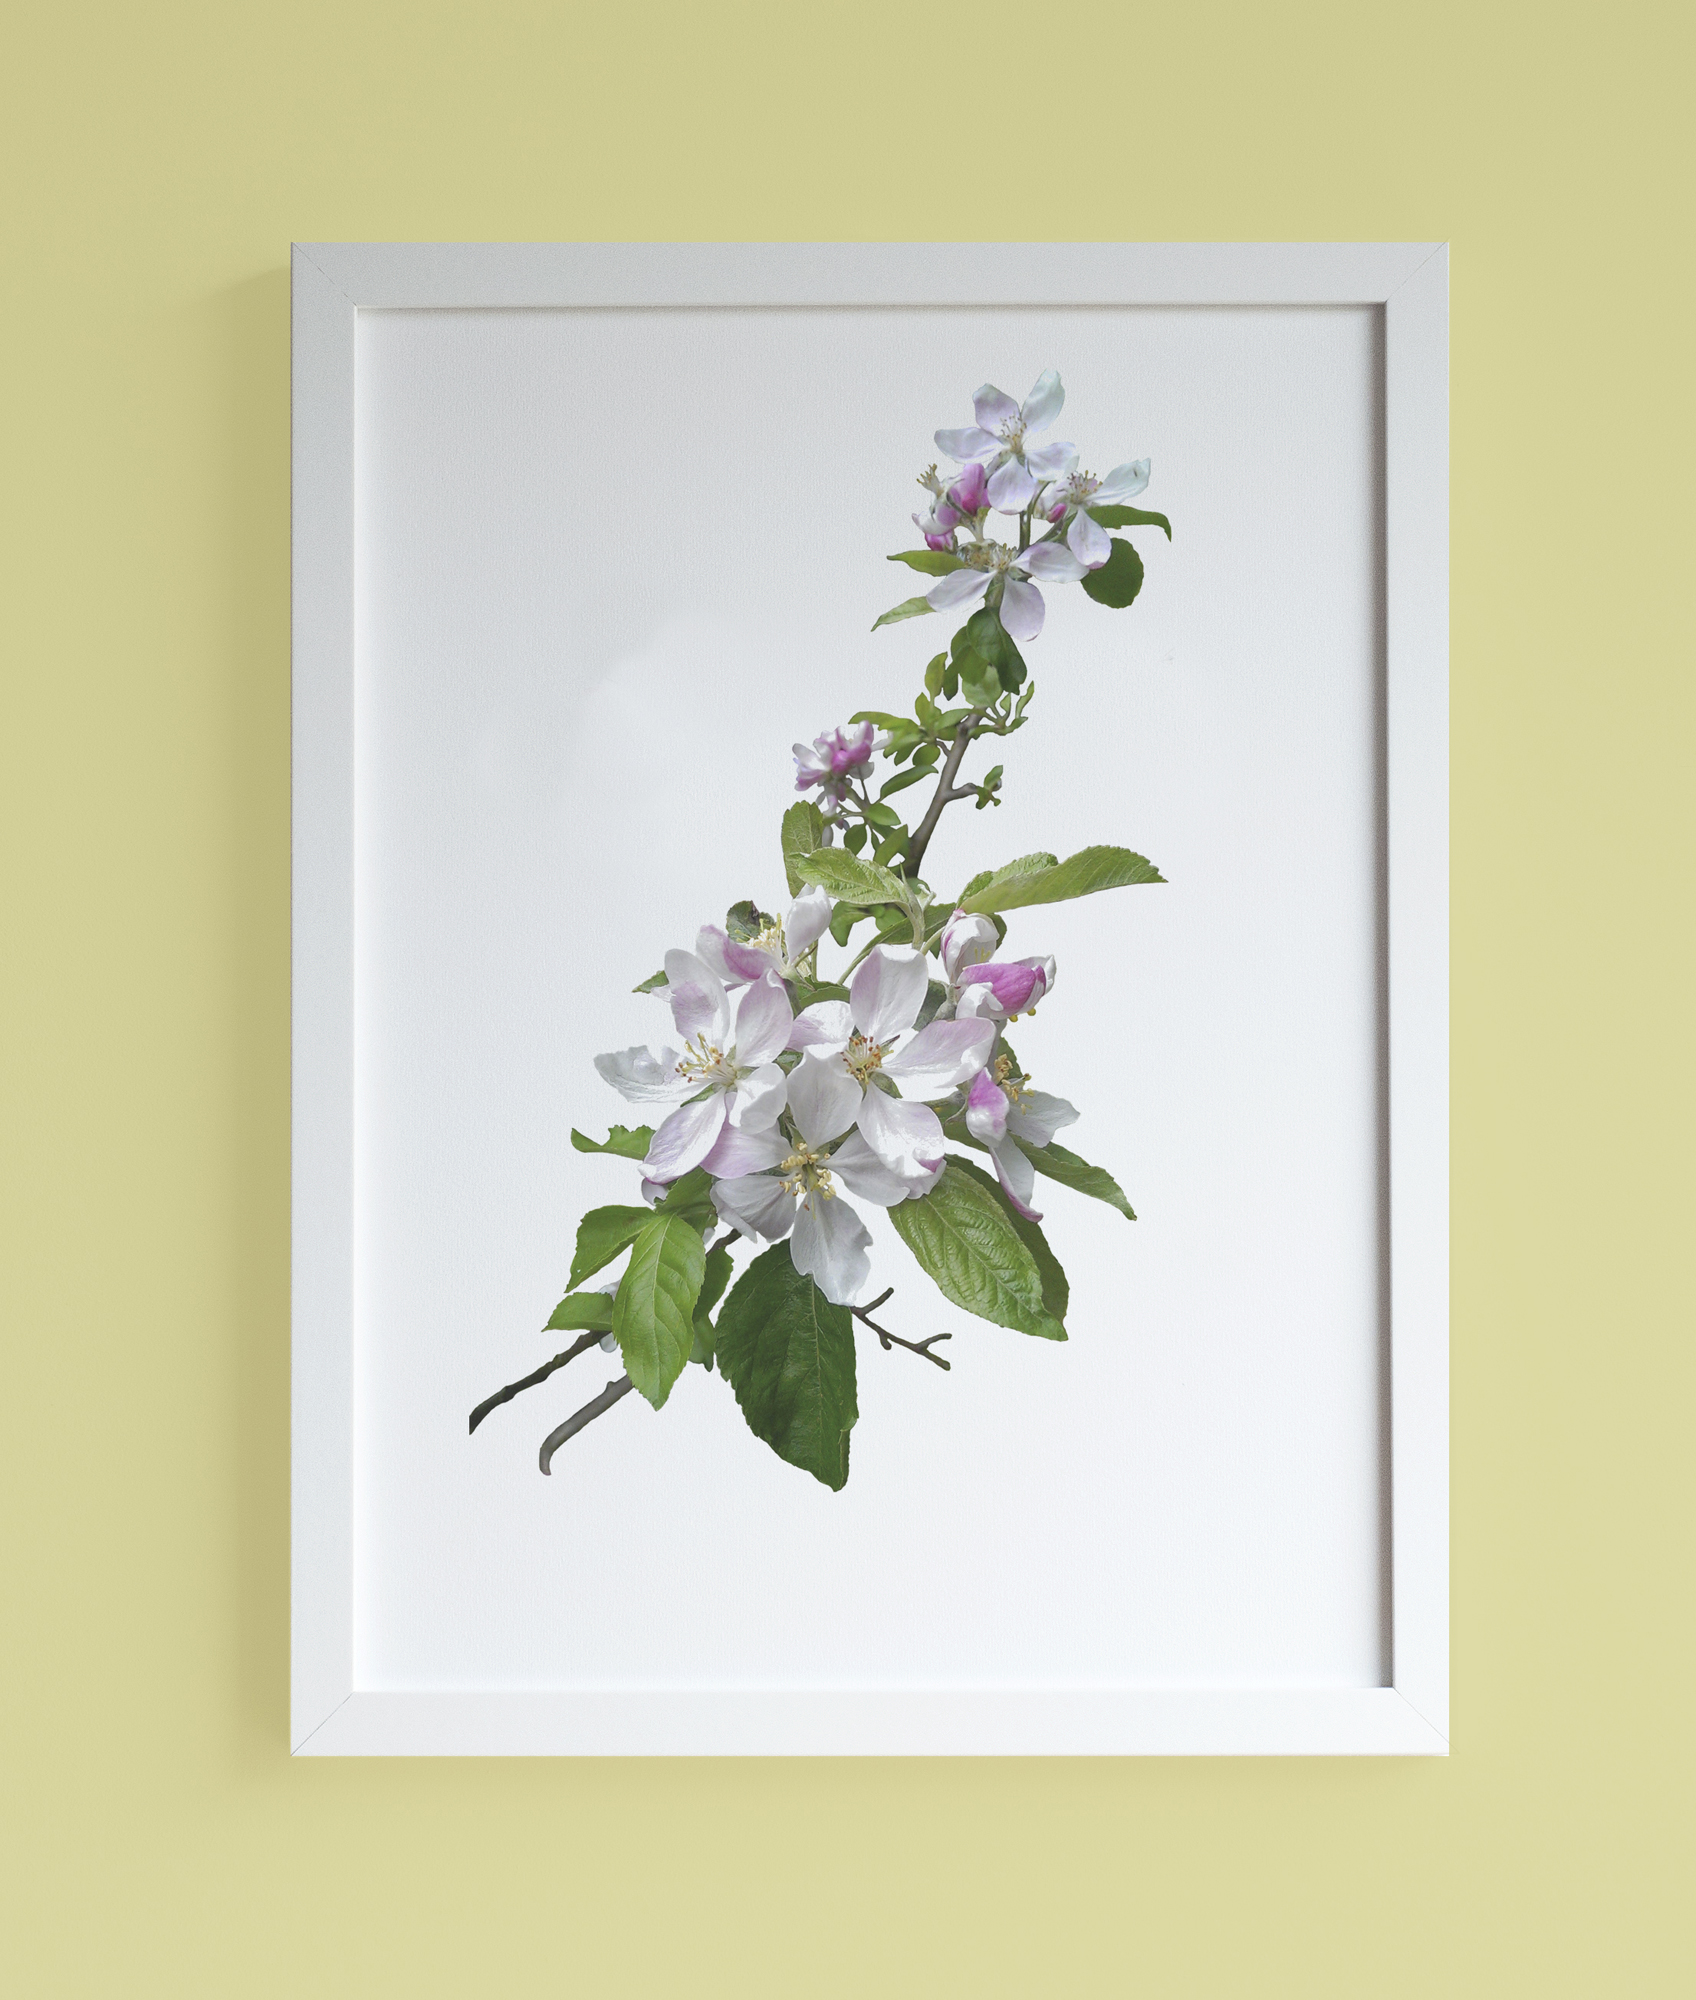 Image of framed print featuring cherry blossom photographic print